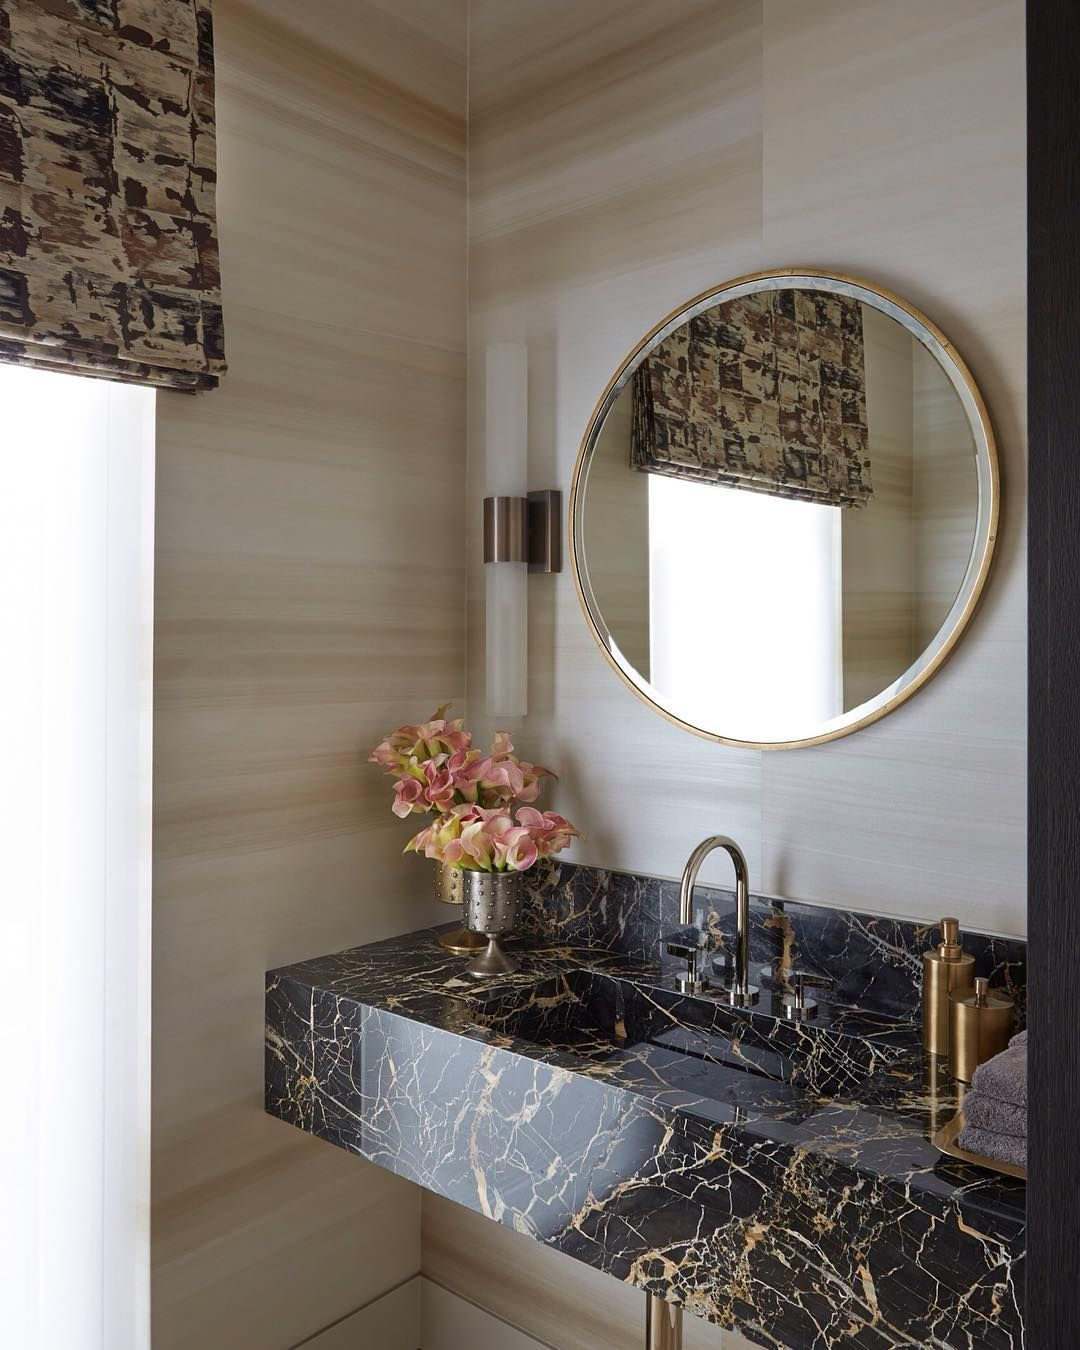 The beautiful marble in the powder room of our Penthouse North project in Knightsbridge. More coming soon to the blog! #hgdfinishes #marble #powderroom #interiordesign #helengreendesign #liveableluxury #penthousenorth #knightsbridge #londoninteriors